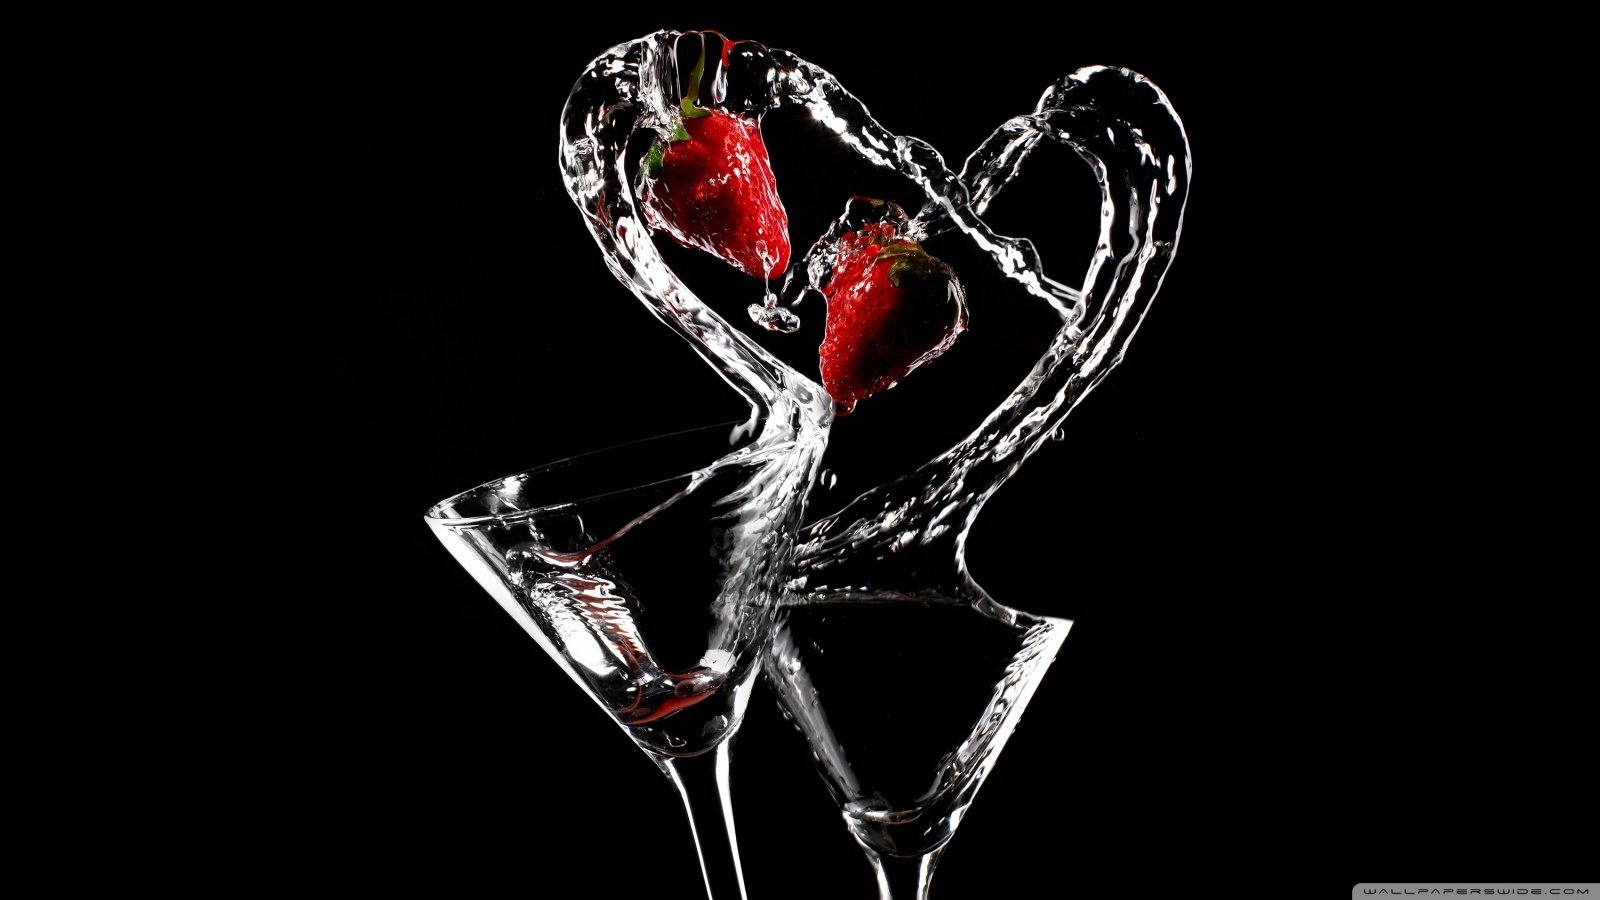 105 Cocktail Hd Wallpapers Background Images Wallpaper